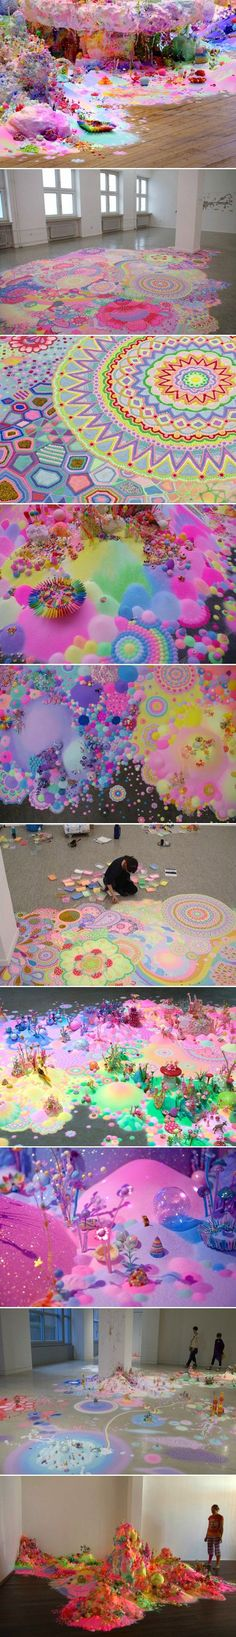 installations by Pip & Pop